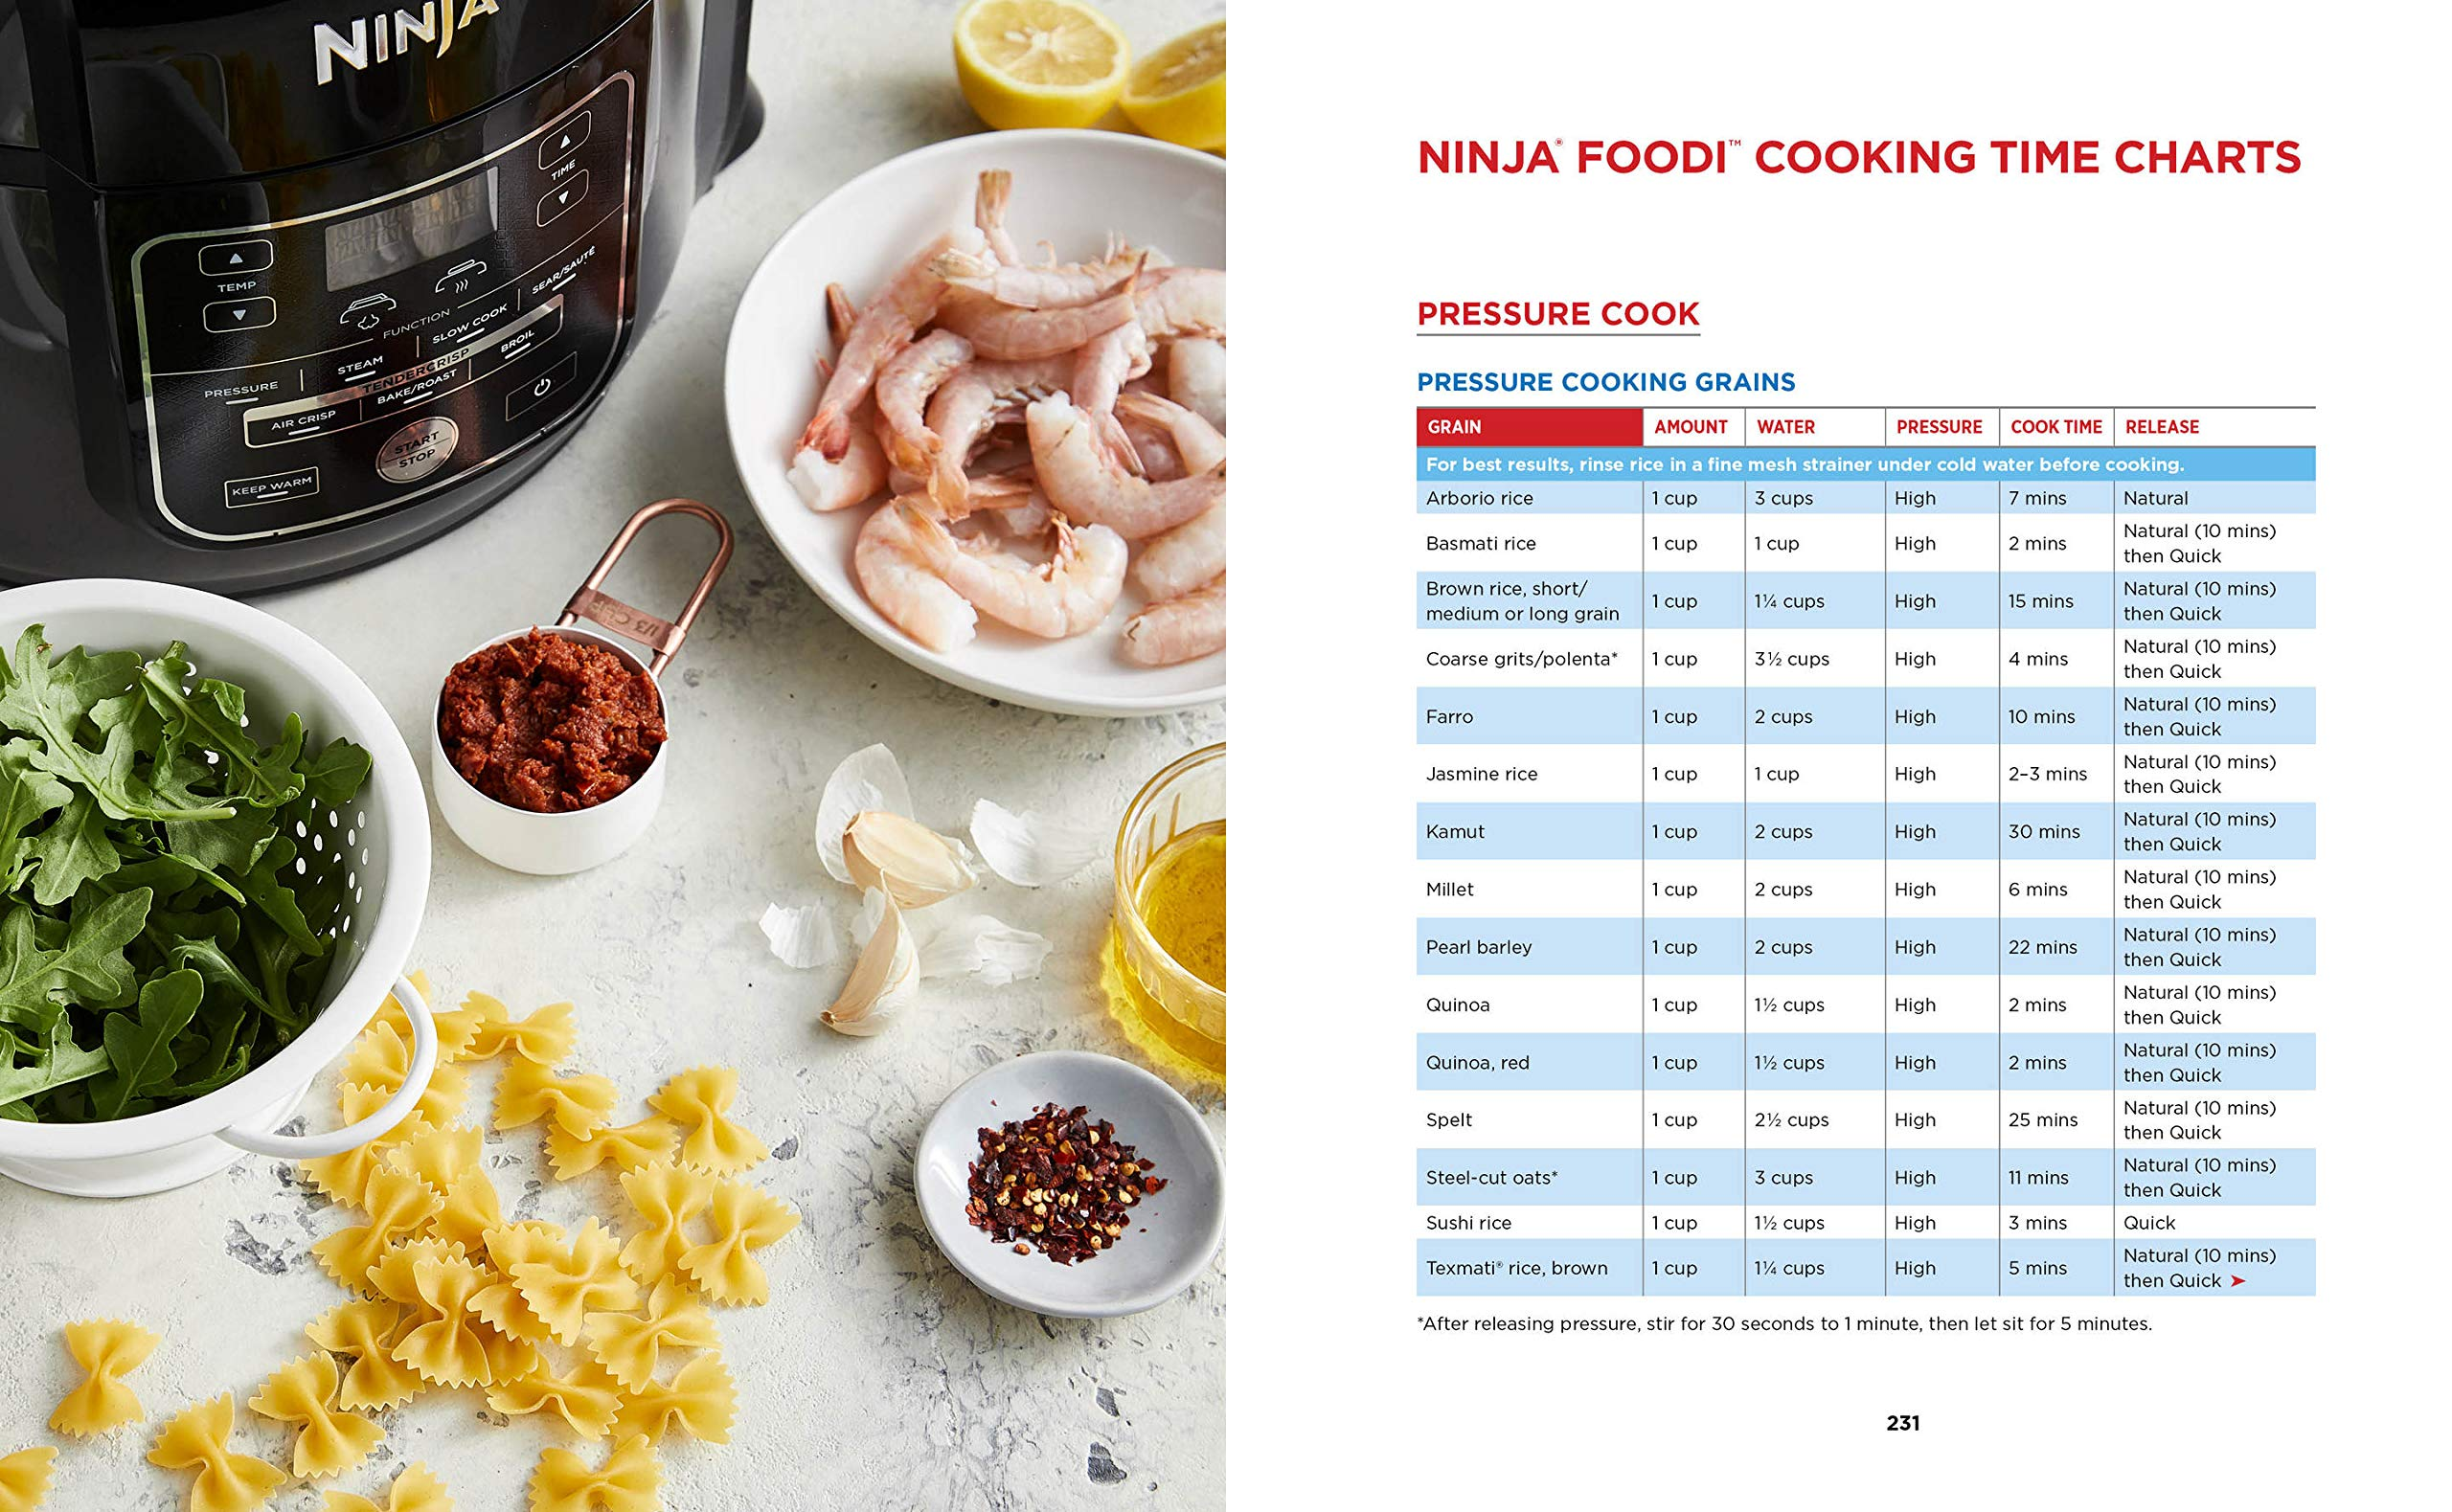 Ninja Foodi The Pressure Cooker That Crisps One Pot Cookbook